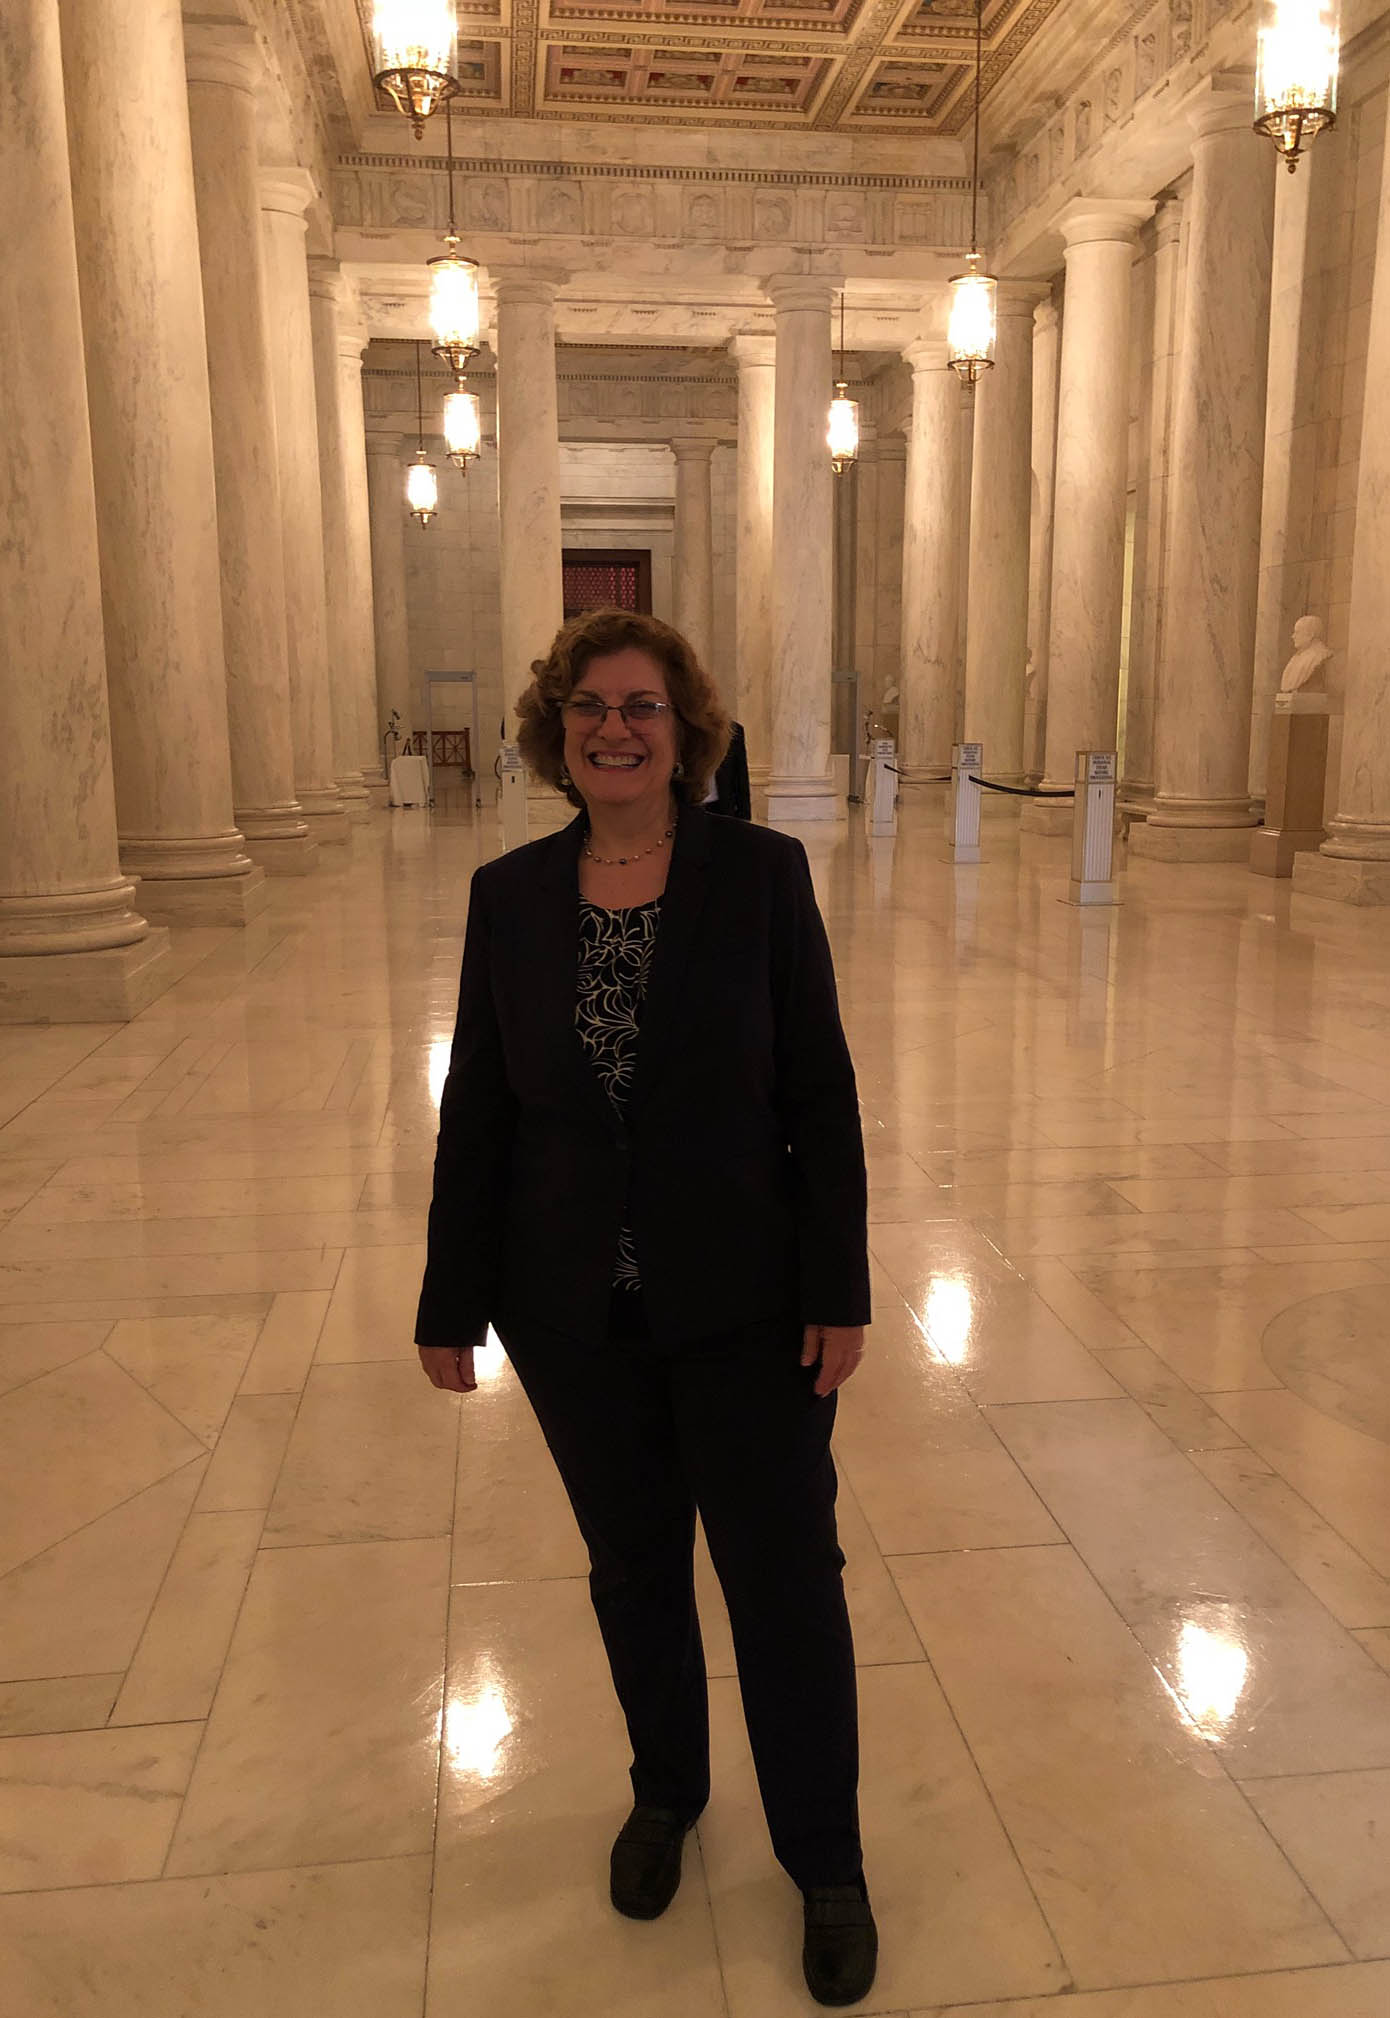 LBJ Senior Lecturer Michele Deitch in the Great Hall at the U.S. Supreme Court on the day she was admitted to the Supreme Court Bar. (Photo courtesy of Michele Deitch)